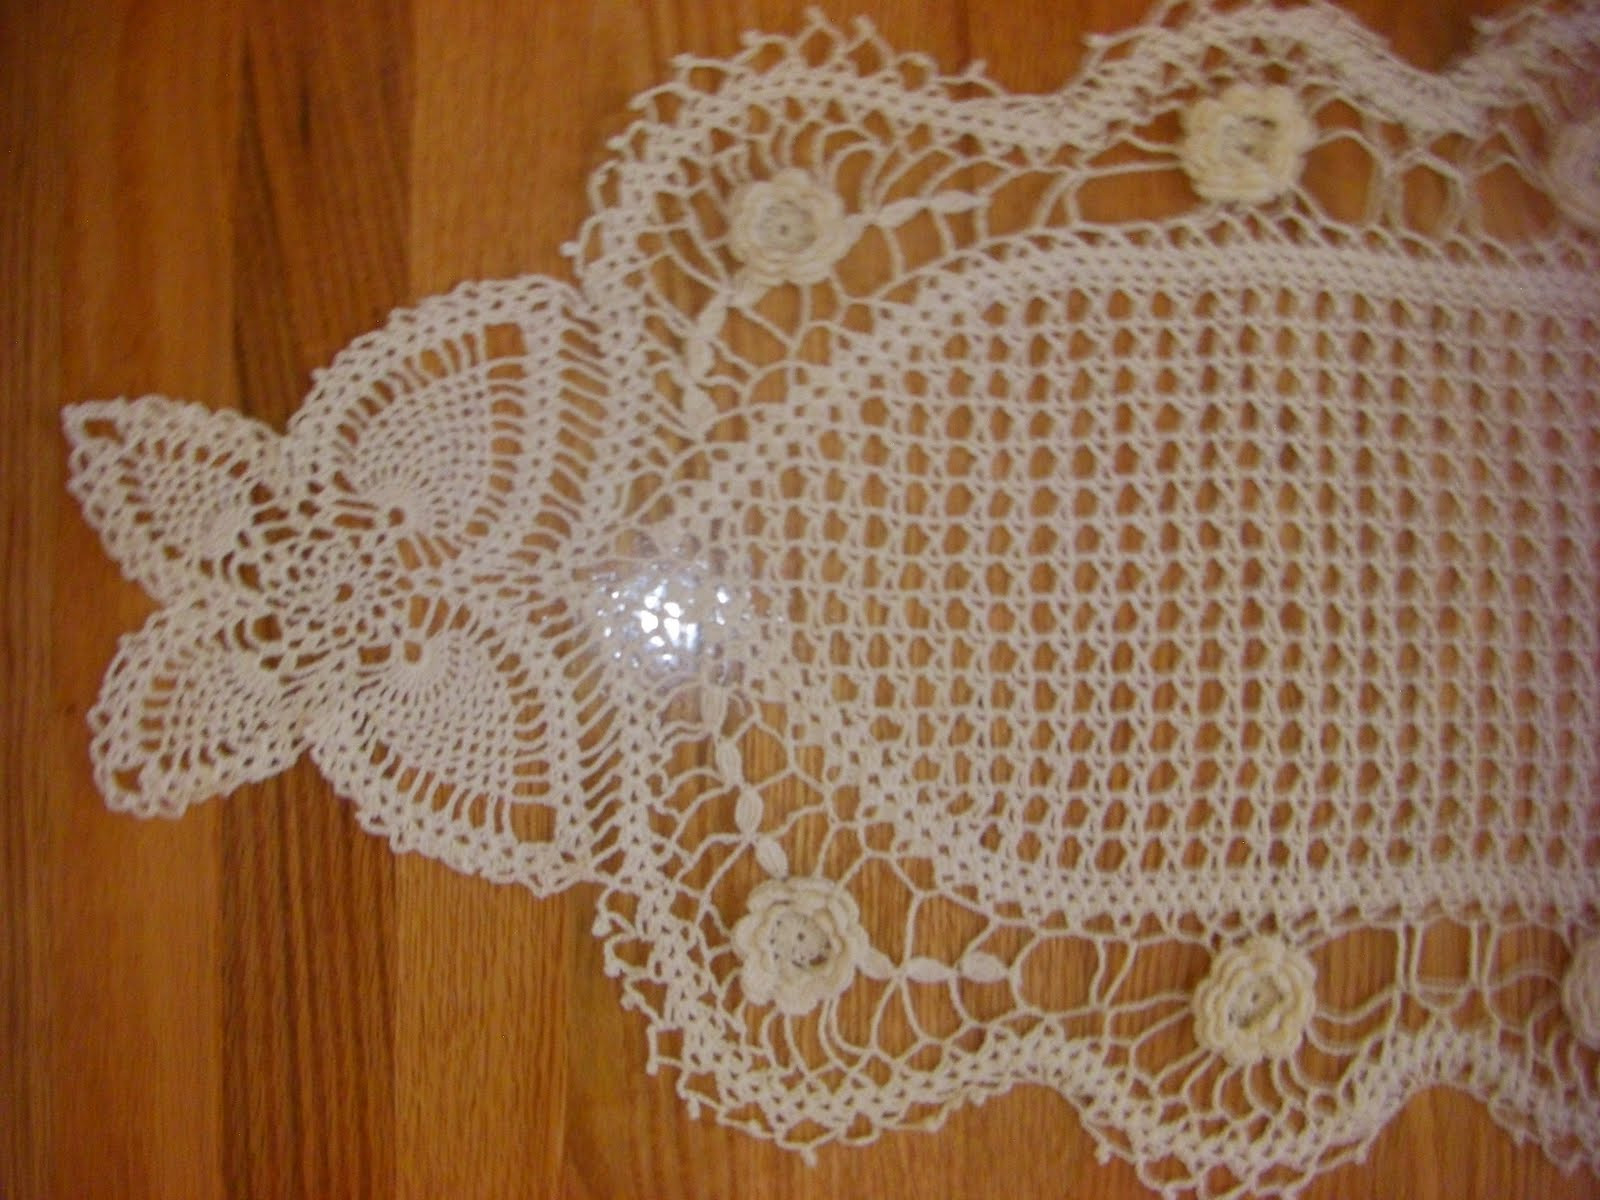 Best Of Free Crochet Patterns Table Runners Dancox for Crochet Table Of Awesome 45 Models Crochet Table